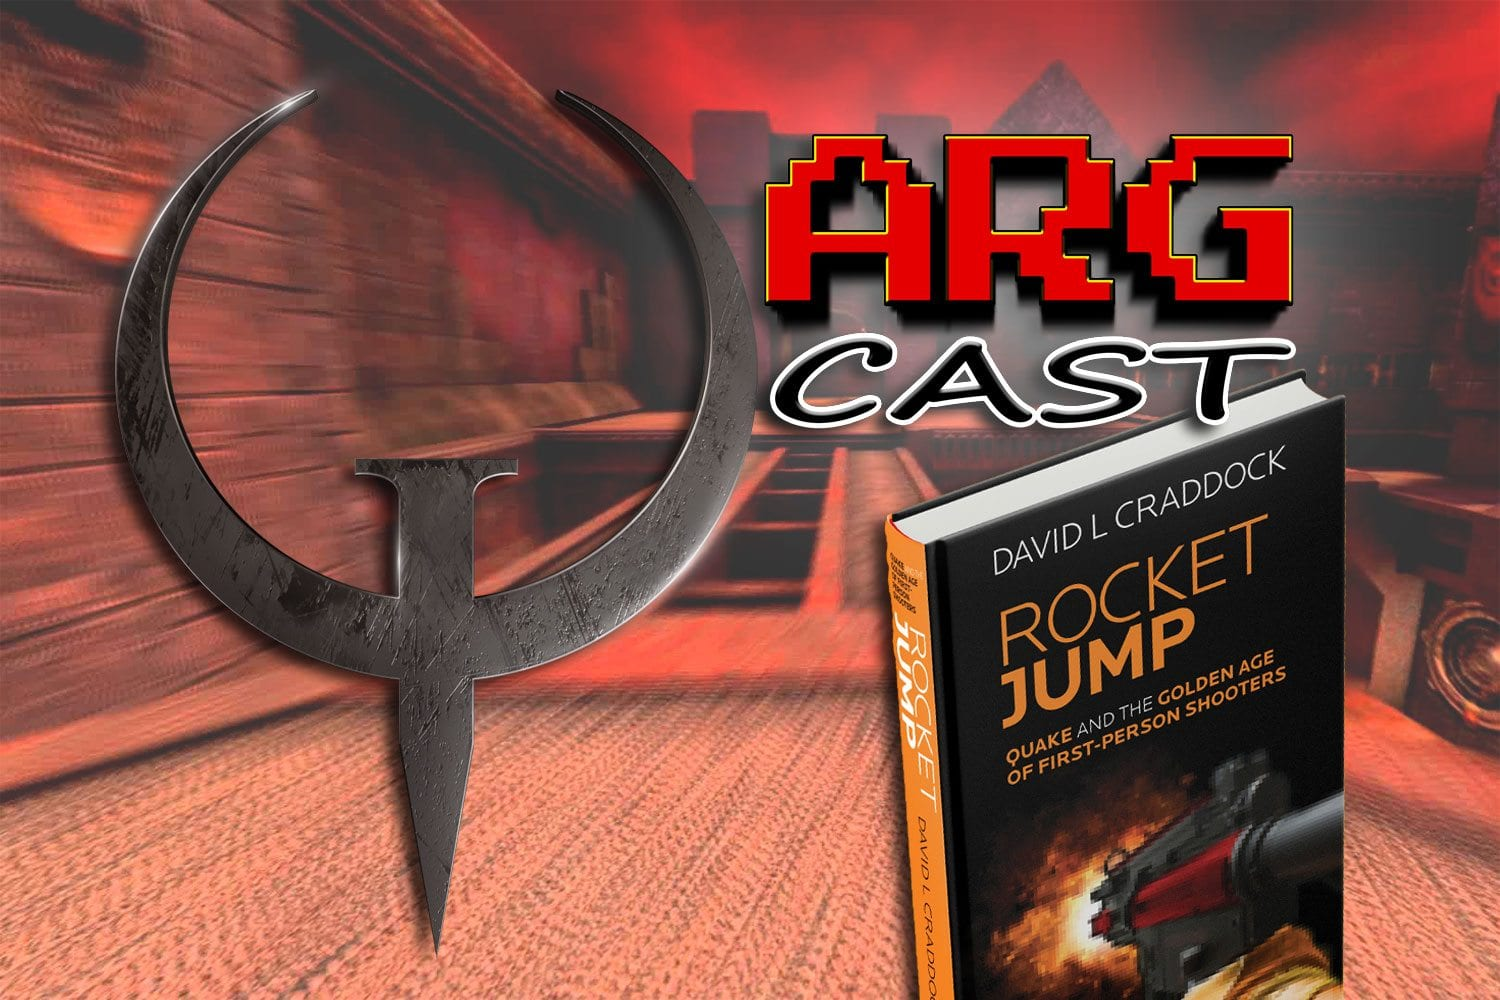 ARGcast Mini #11: Quake and Rocket Jump with David L. Craddock